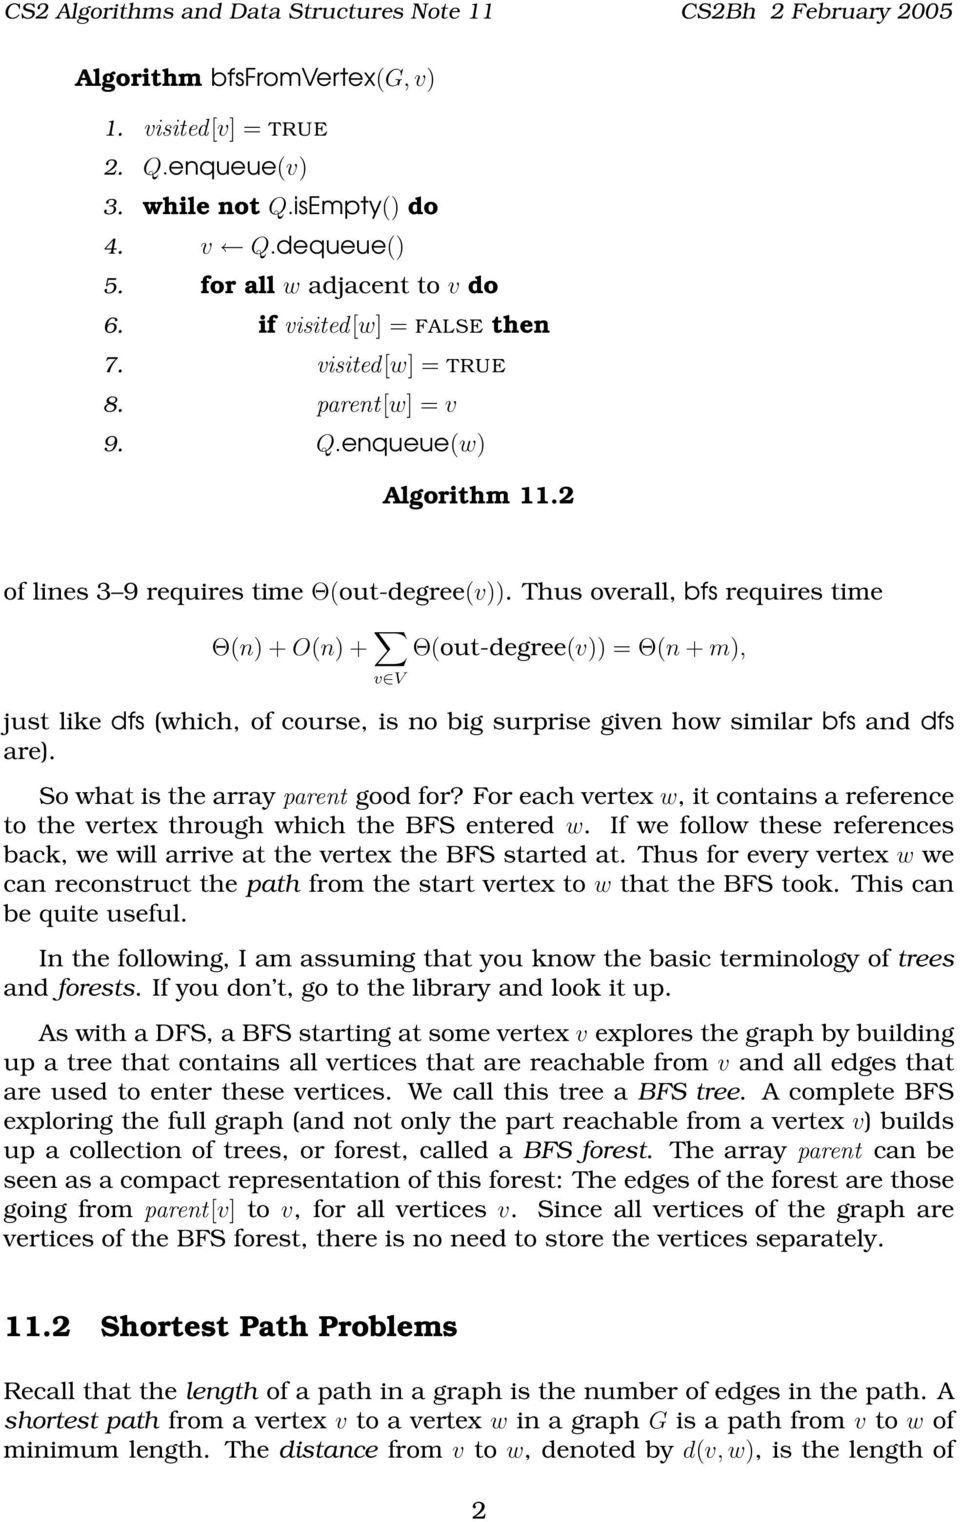 CS2 Algorithms and Data Structures Note 11  Breadth-First Search and